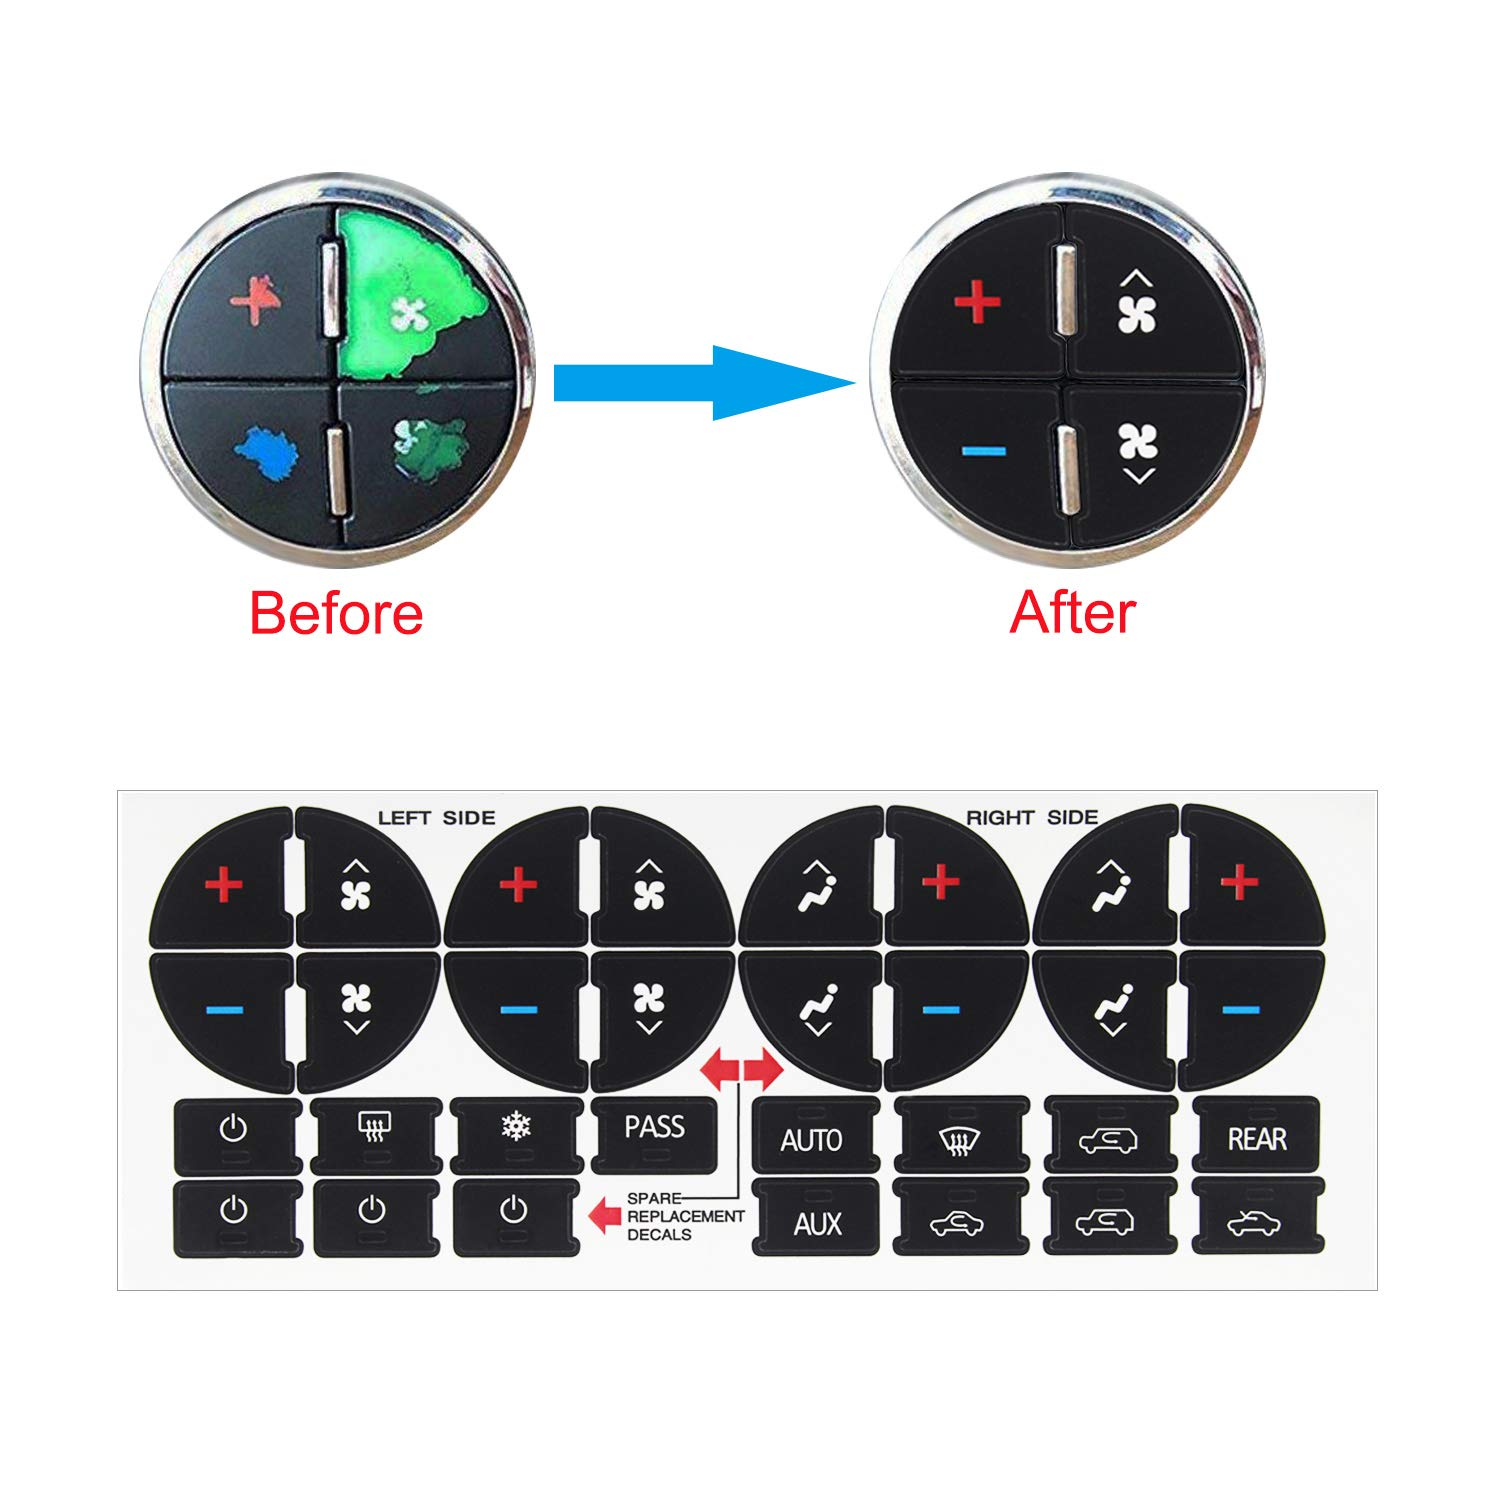 Luckkyme AC Button Replacement Stickers Kit Adhesive AC Dash Button Fix Ruined Faded Auto AC Controls for Buick Chevrolet Chevy GMC Vehicle 2pcs New